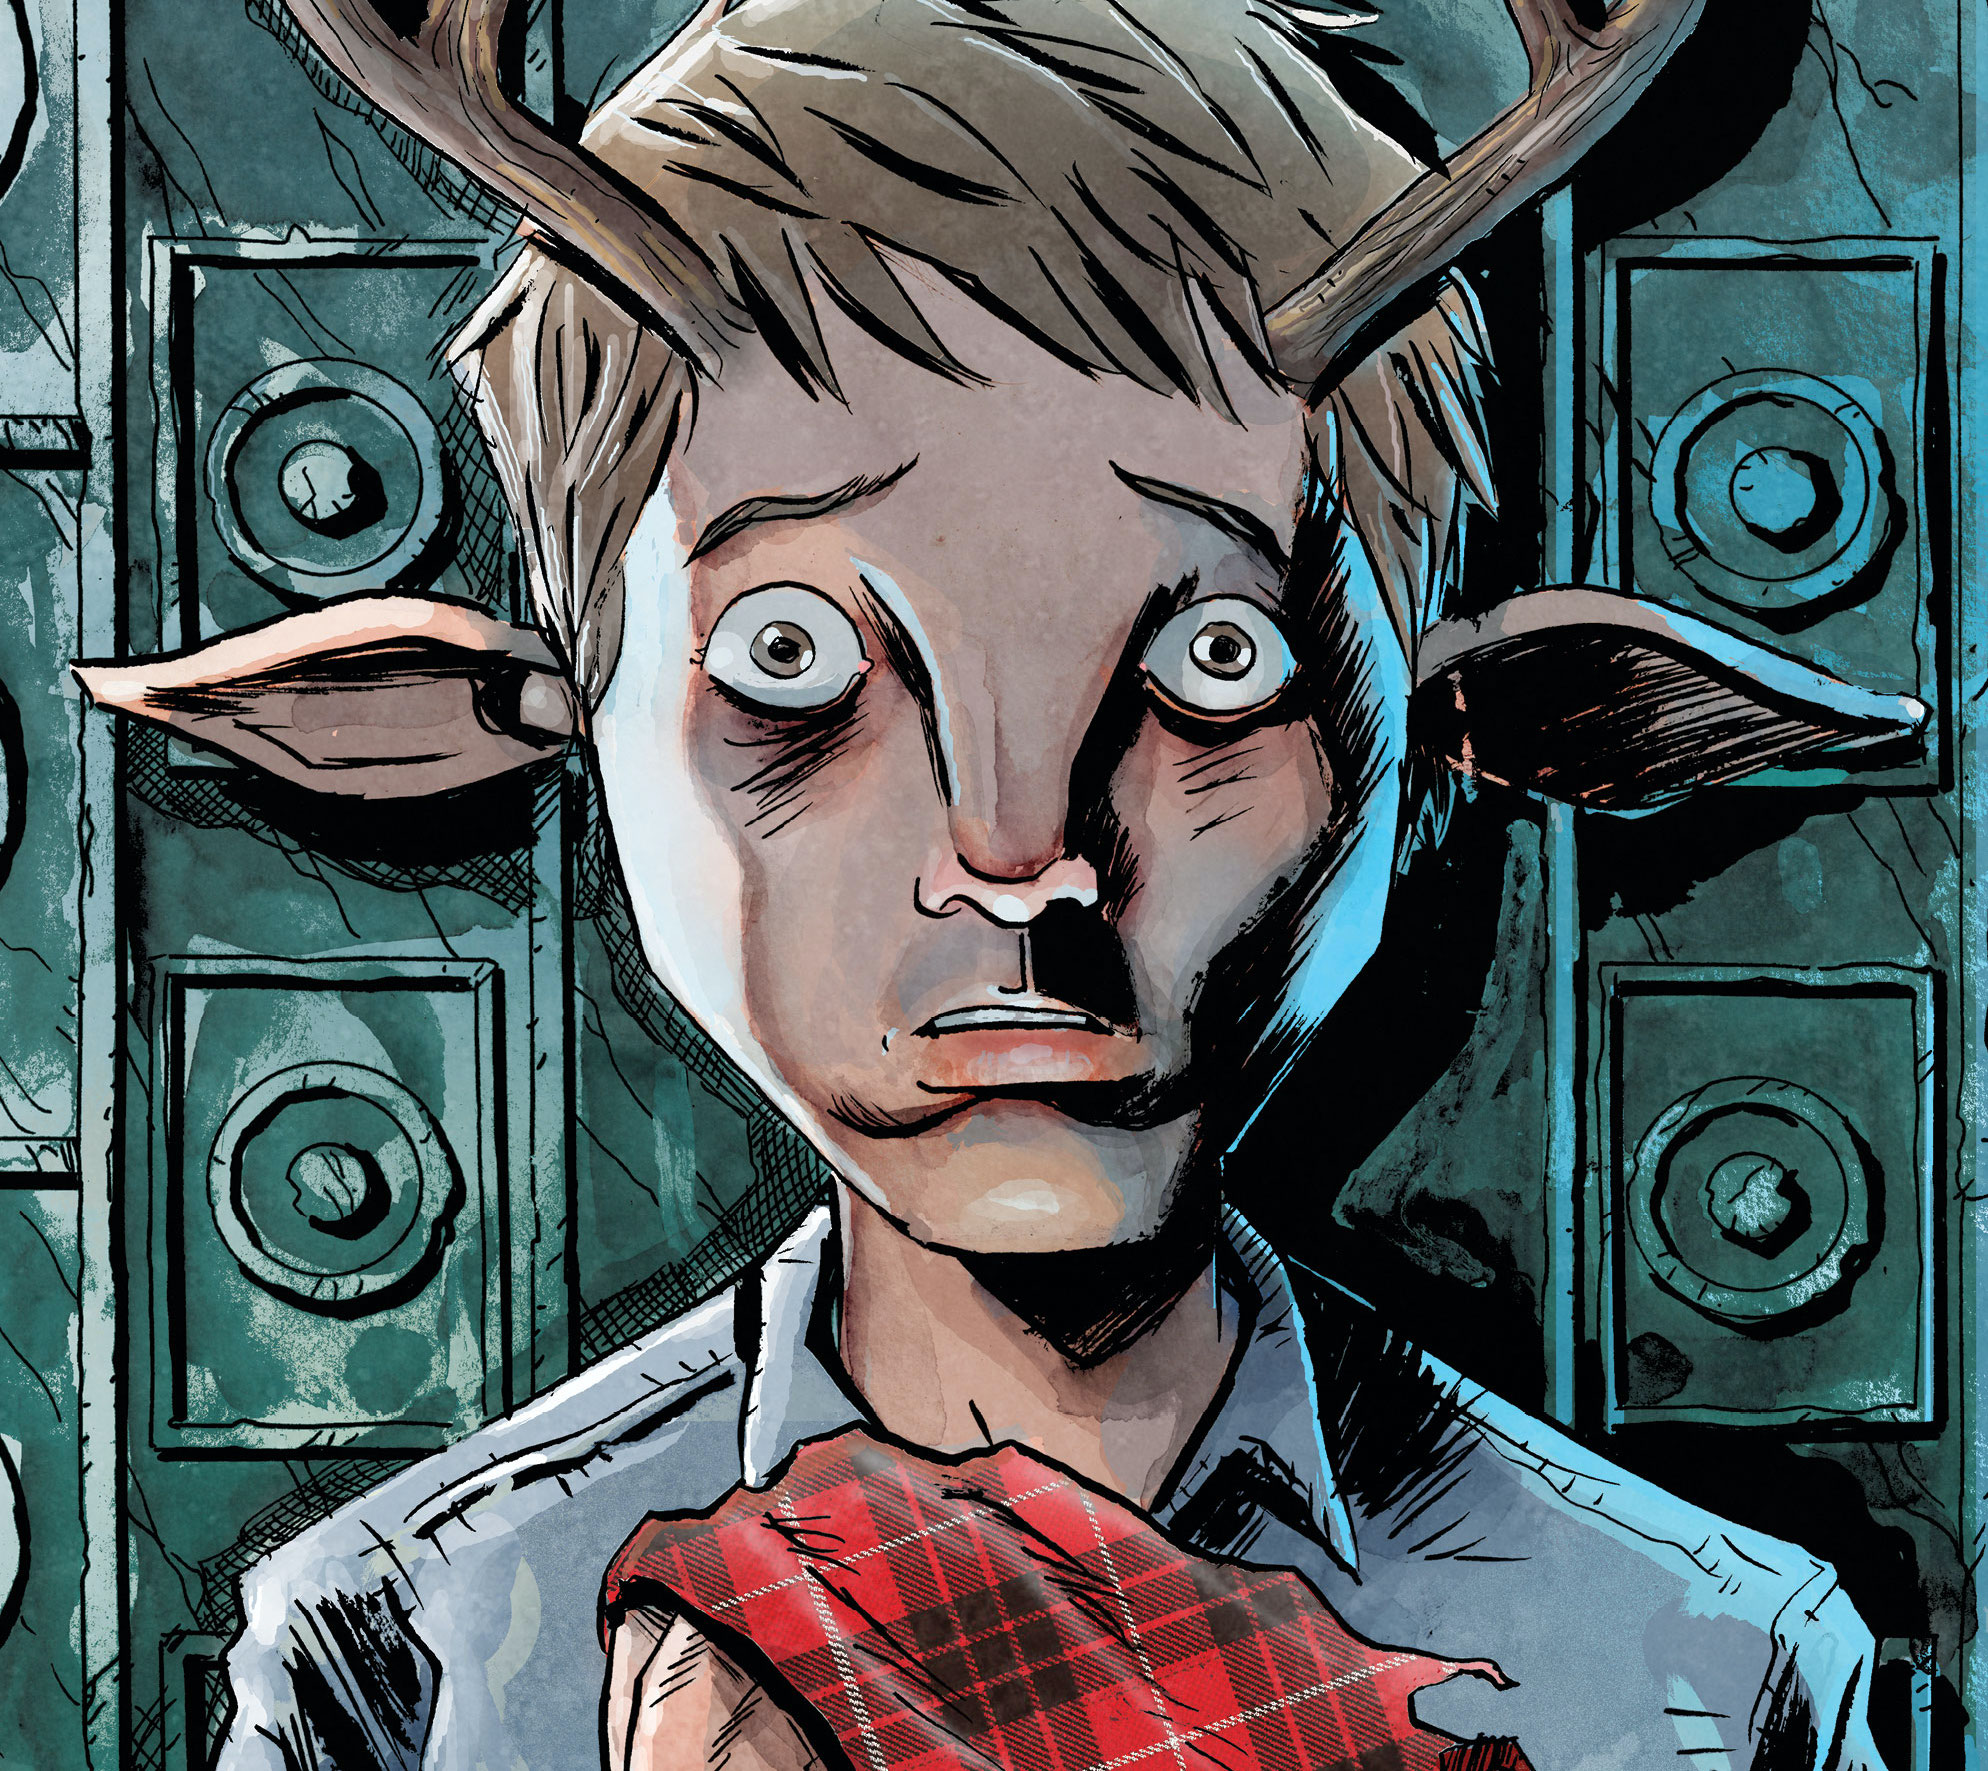 Jeff Lemire and colorist José Villarubia will deliver a 'reimagining' of Sweet Tooth.